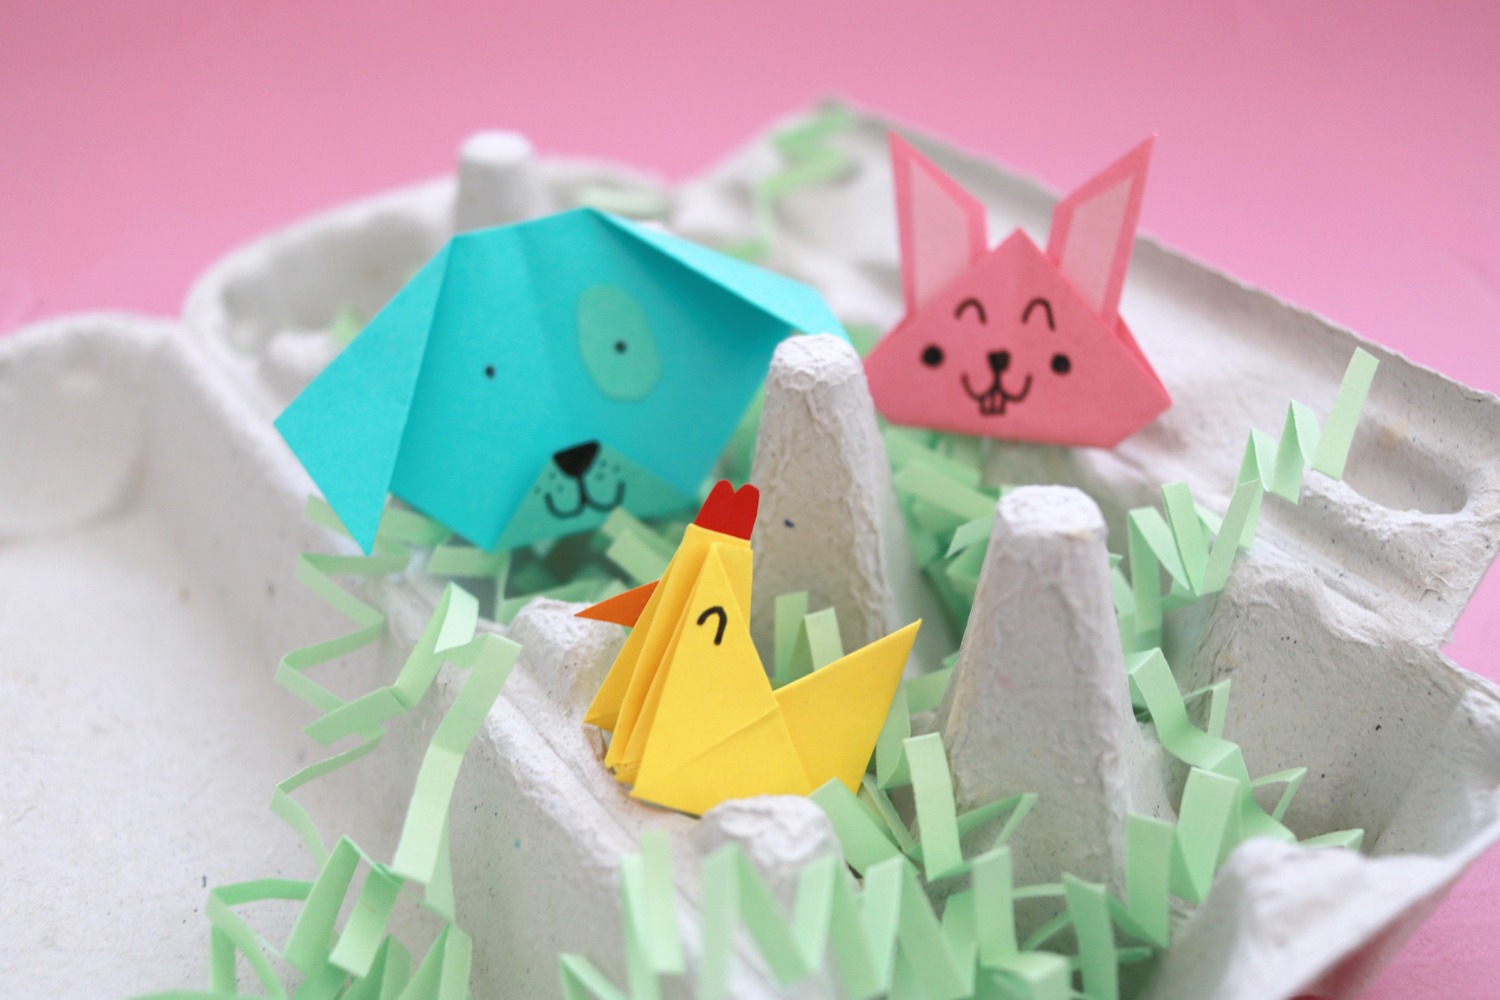 Origami Animals Free Vector Art - (365 Free Downloads) | 1000x1500